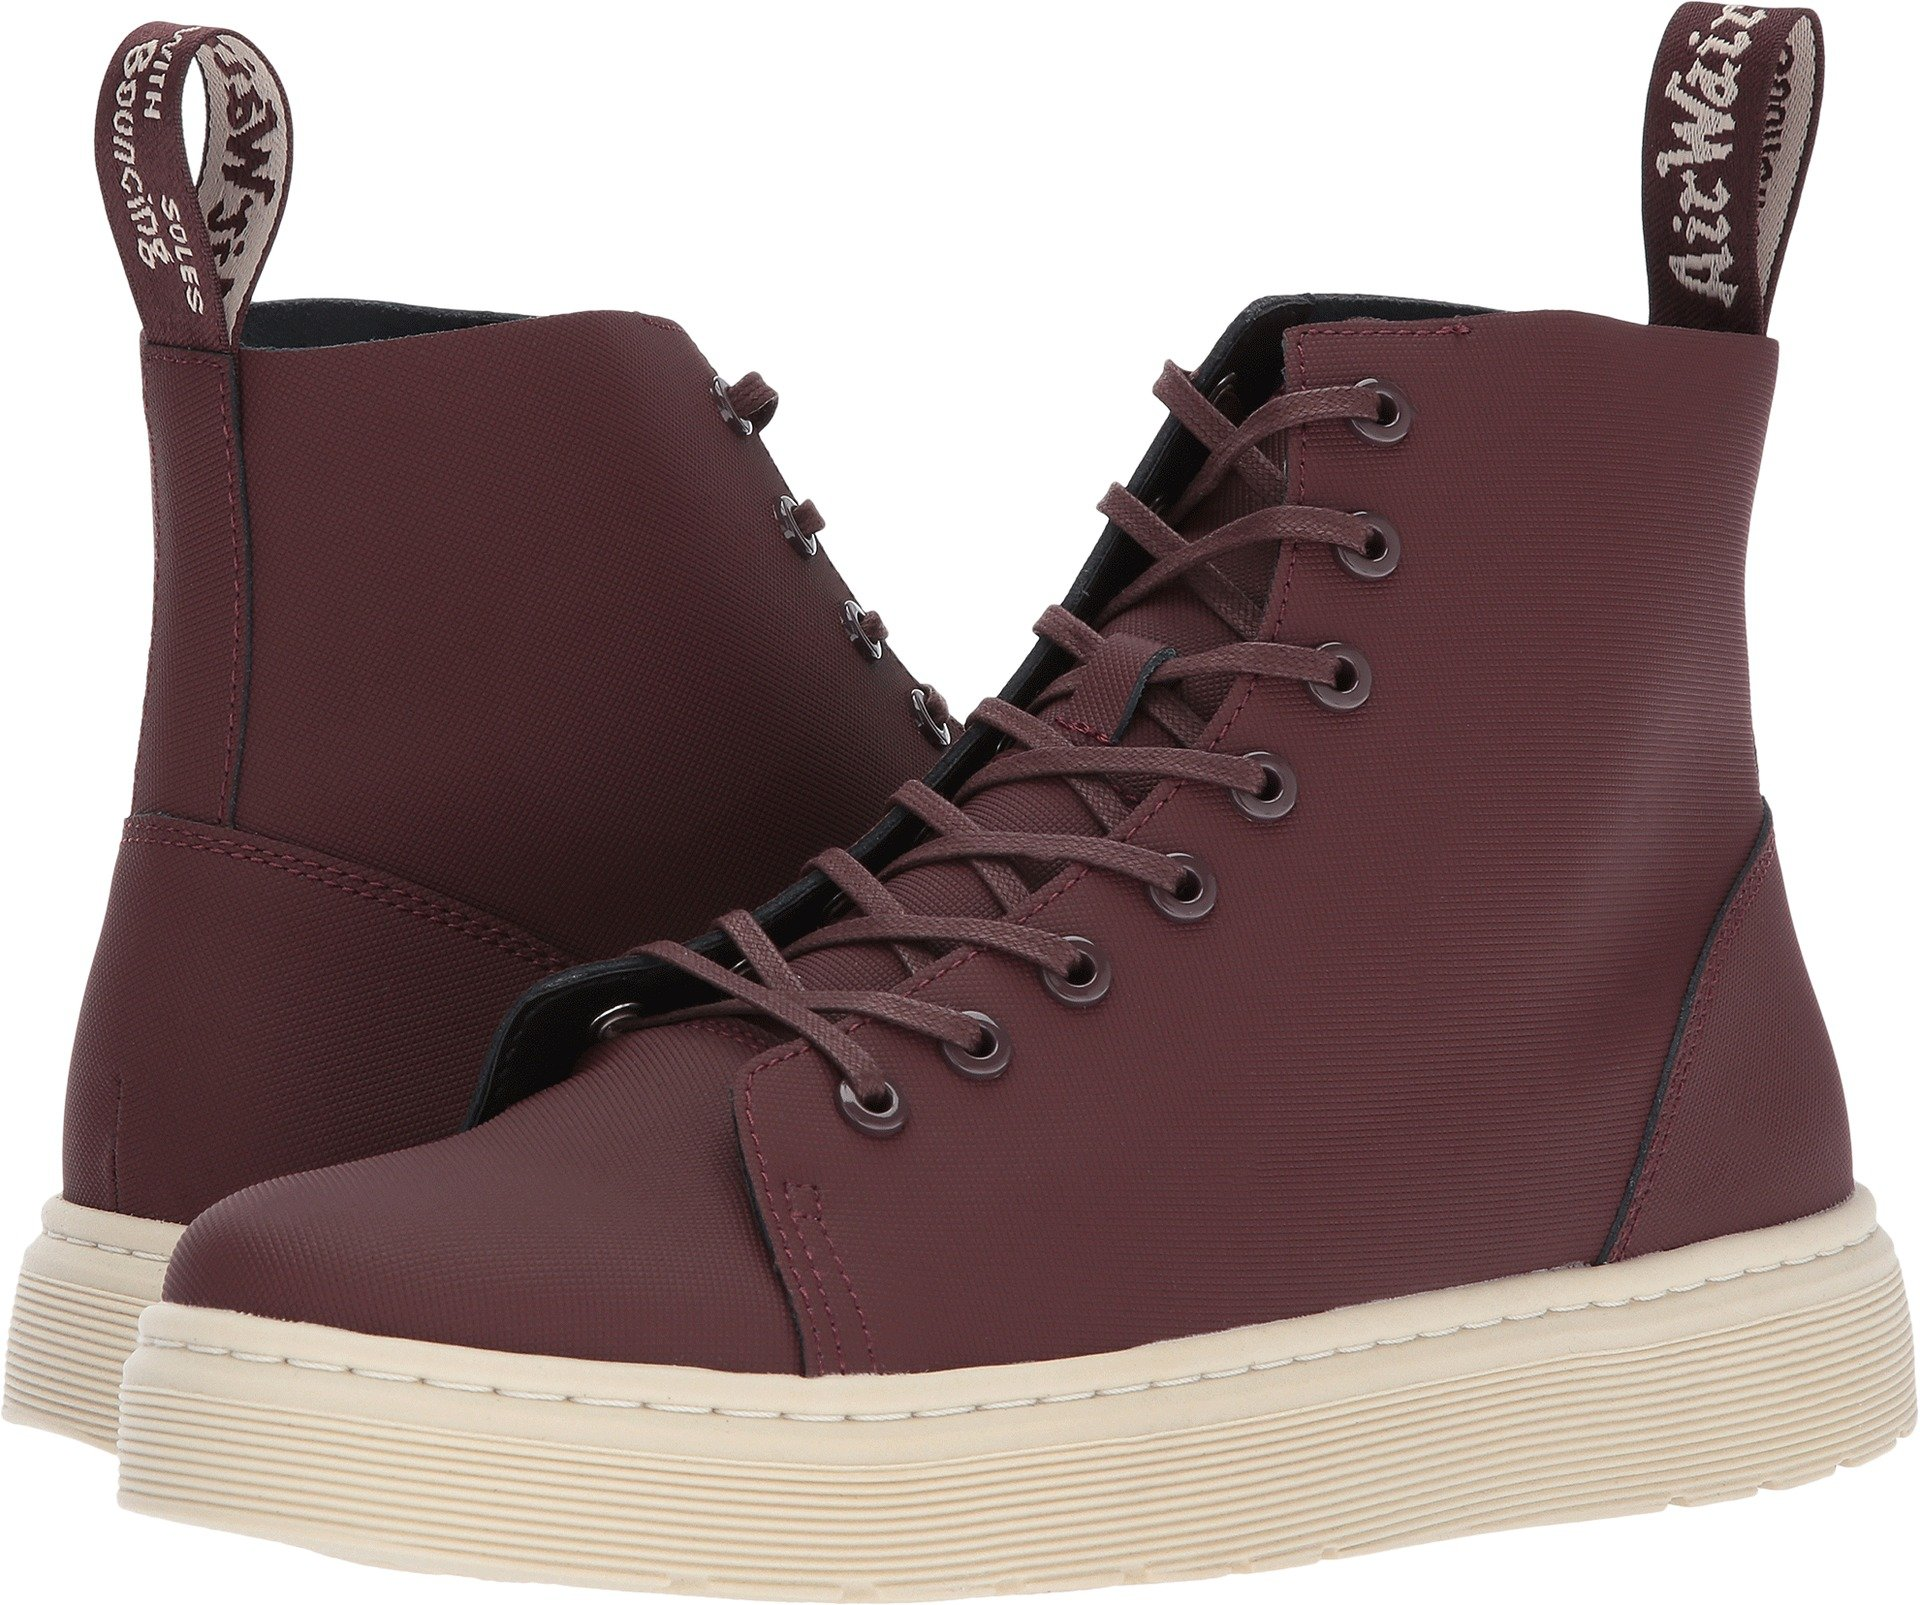 Dr. Martens Unisex Talib 8-Eye Raw Boot Old Oxblood Ajax 11 M UK